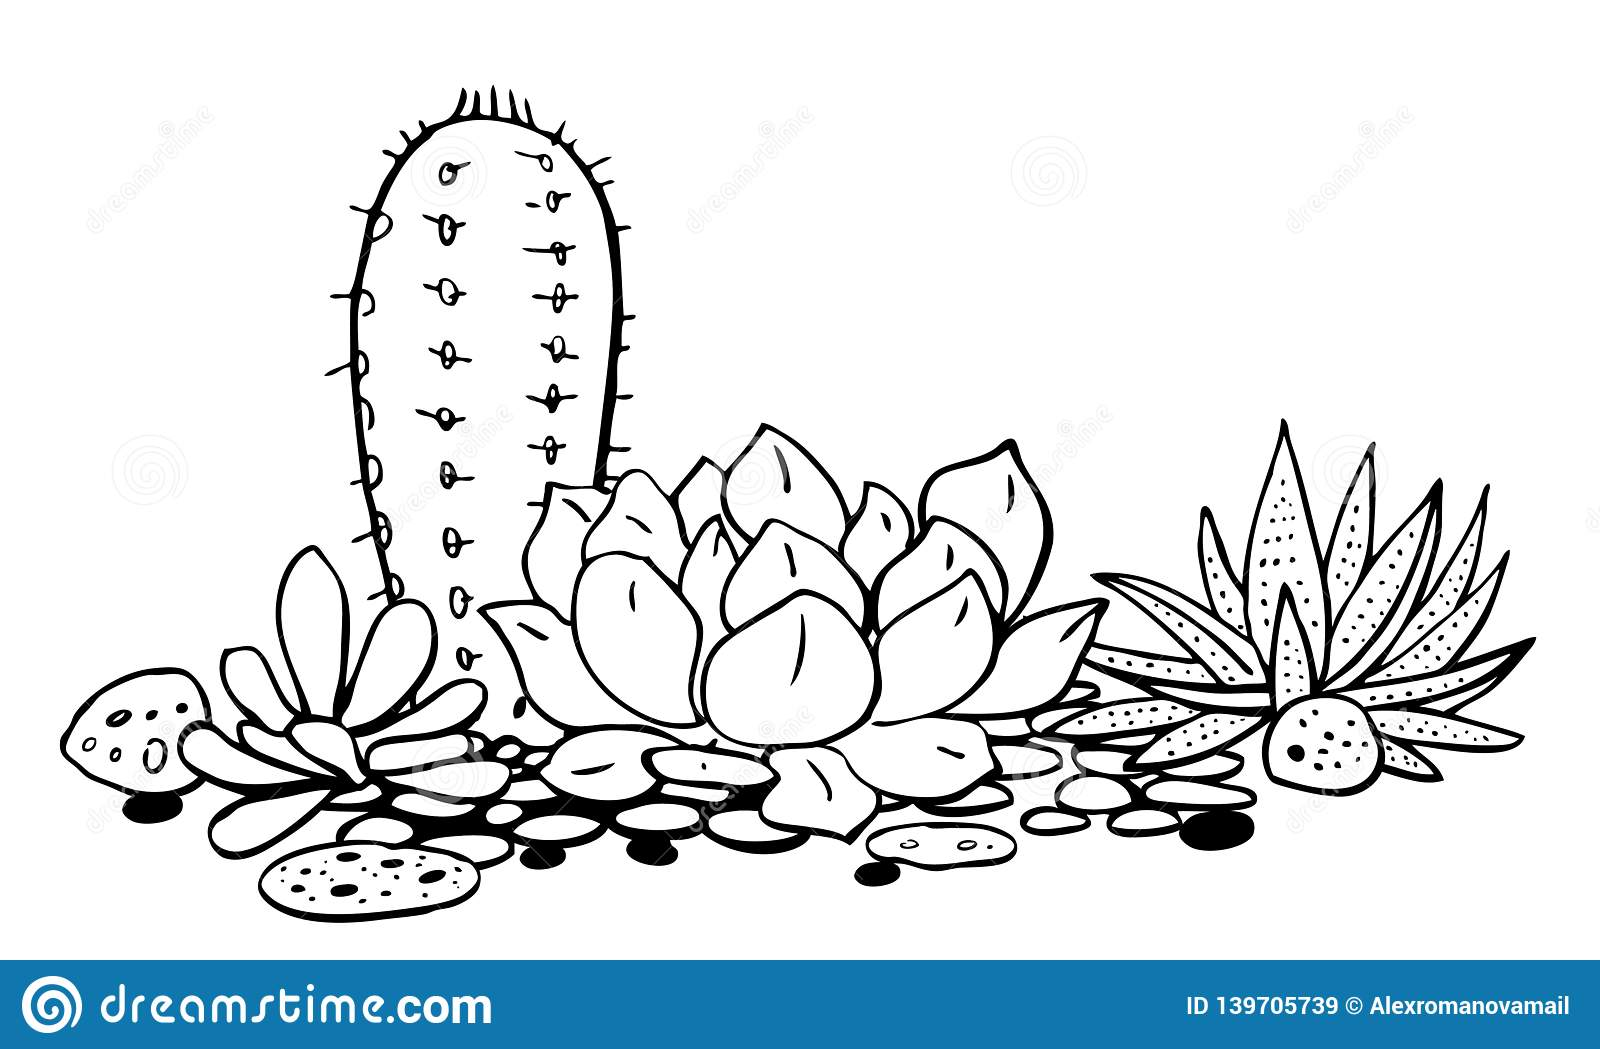 Cactus And Succulents Group Vector Hand Drawn Outline Black And White Sketch Illustration Stock Vector Illustration Of Flora Drawn 139705739